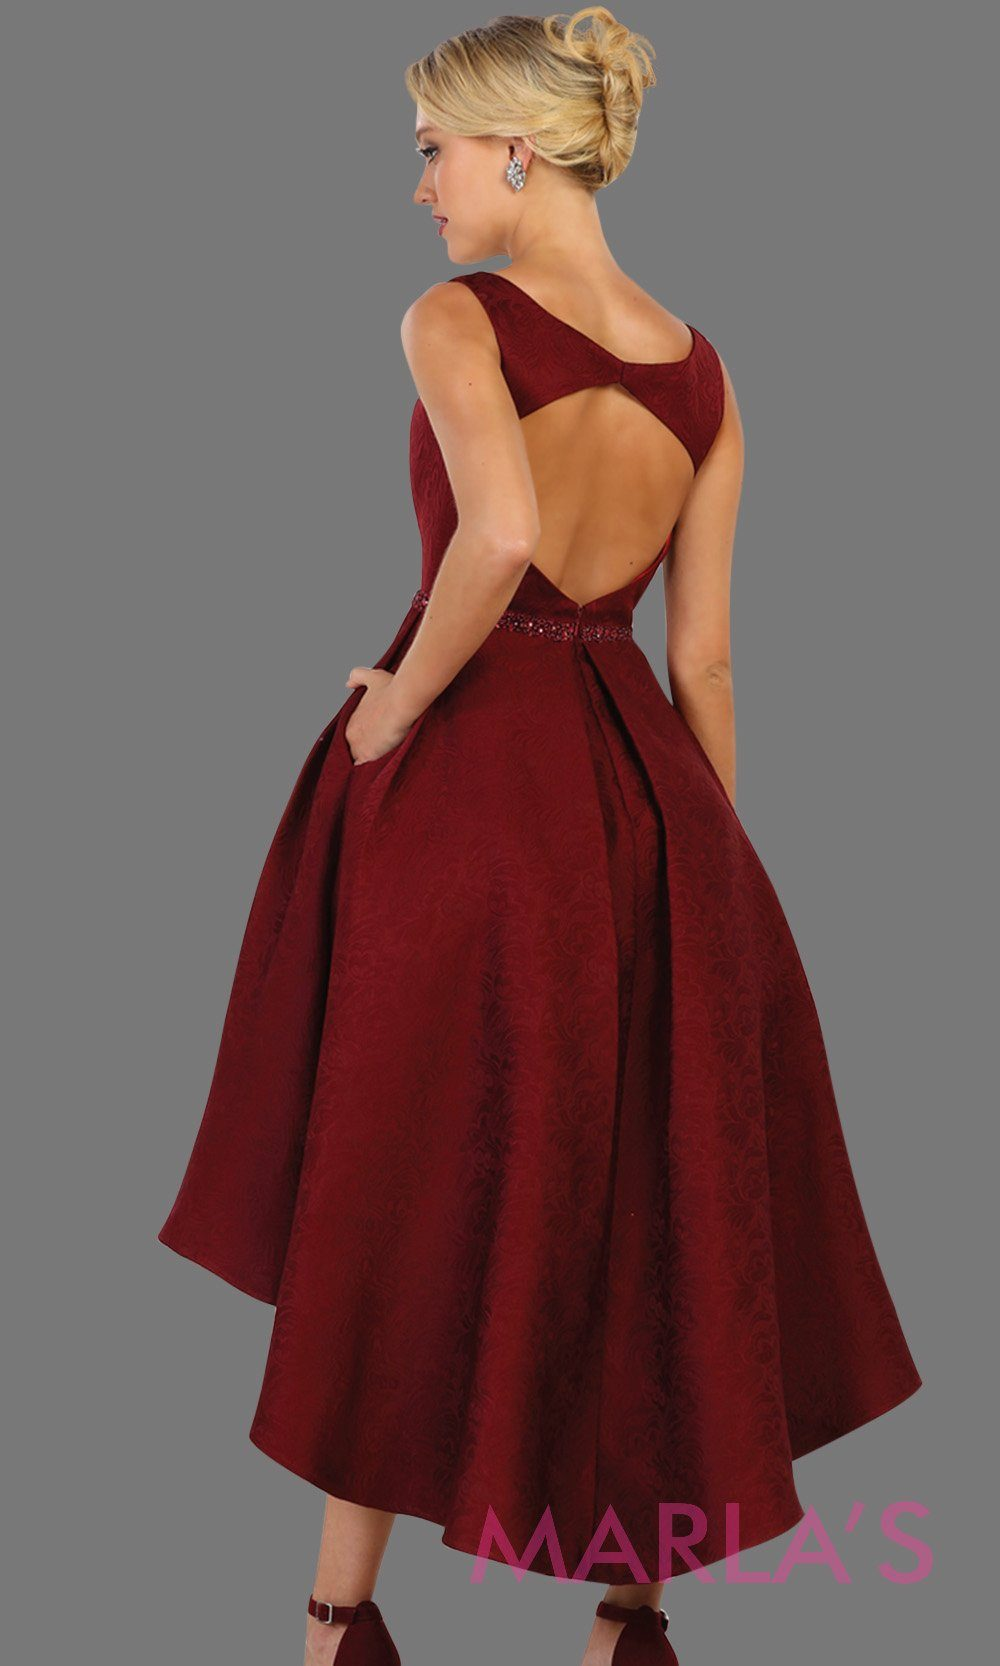 Back of High low burgundy high neck dress with open back. Perfect for graduation, grade 8 grad, red hi lo prom dress, wedding guest dress, formal party gown, gala, semi formal, engagement dress.Available in plus sizes.